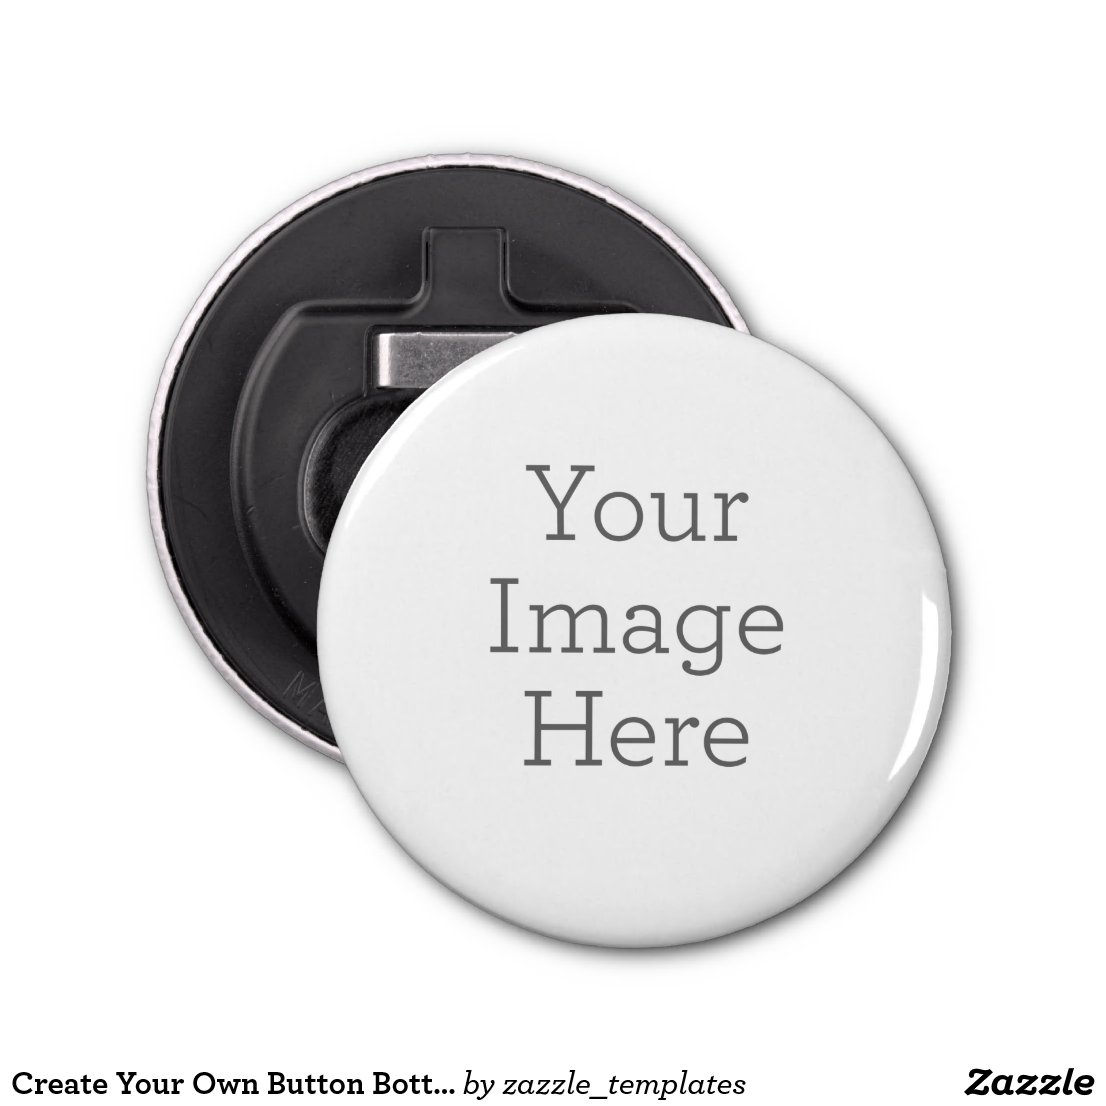 Create Your Own Bottle Opener